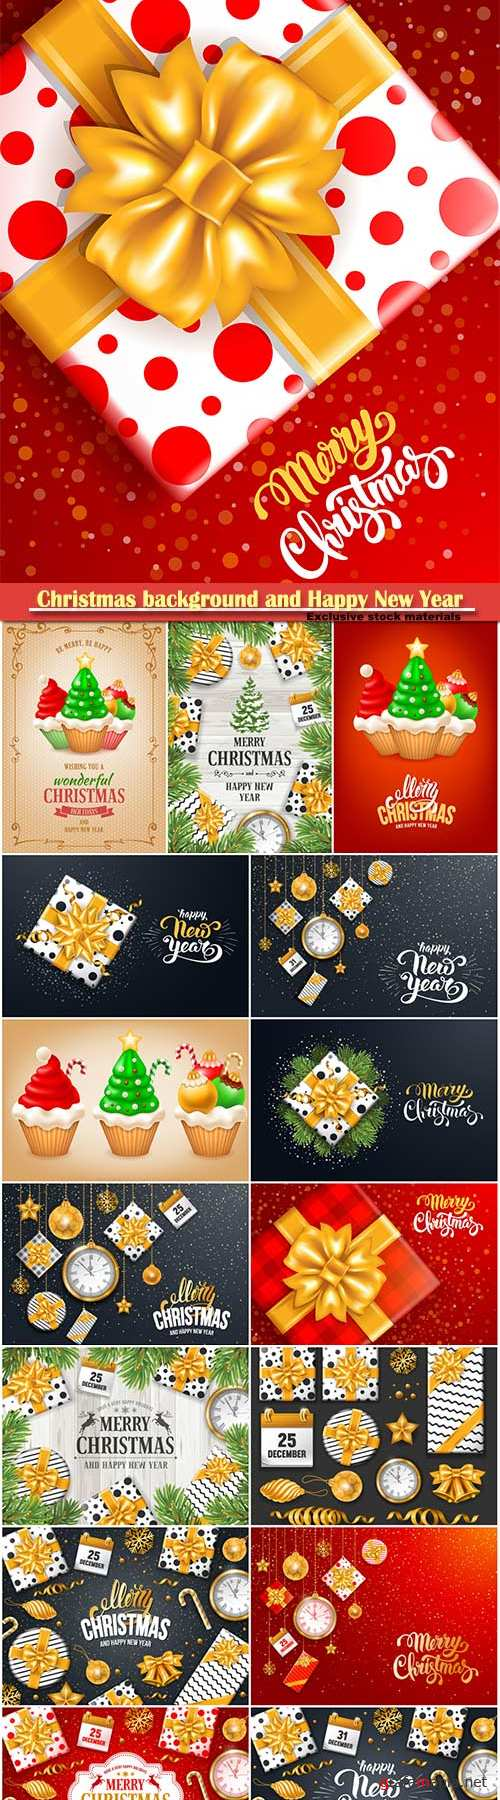 Christmas luxury background and Happy New Year vector illustration